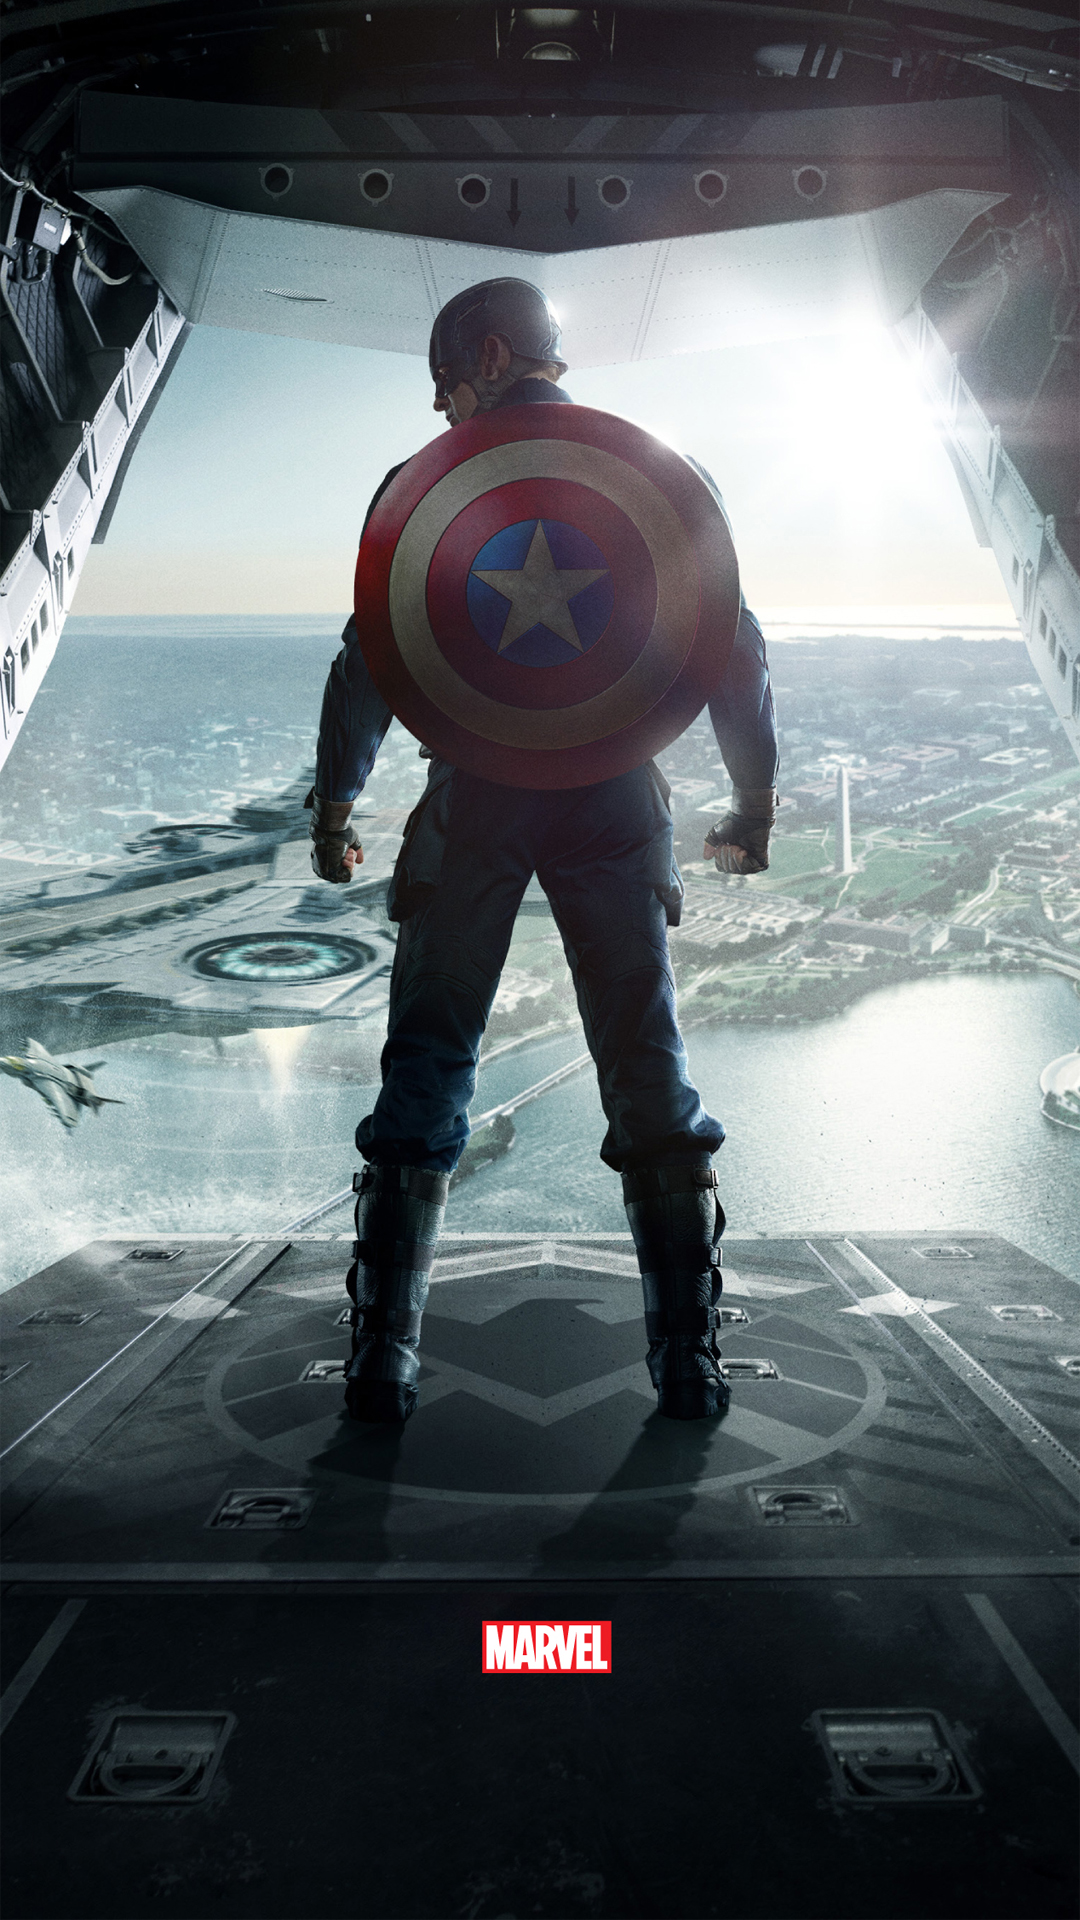 Hd wallpaper of captain america - Captain America The Winter Soldier Htc One Wallpaper